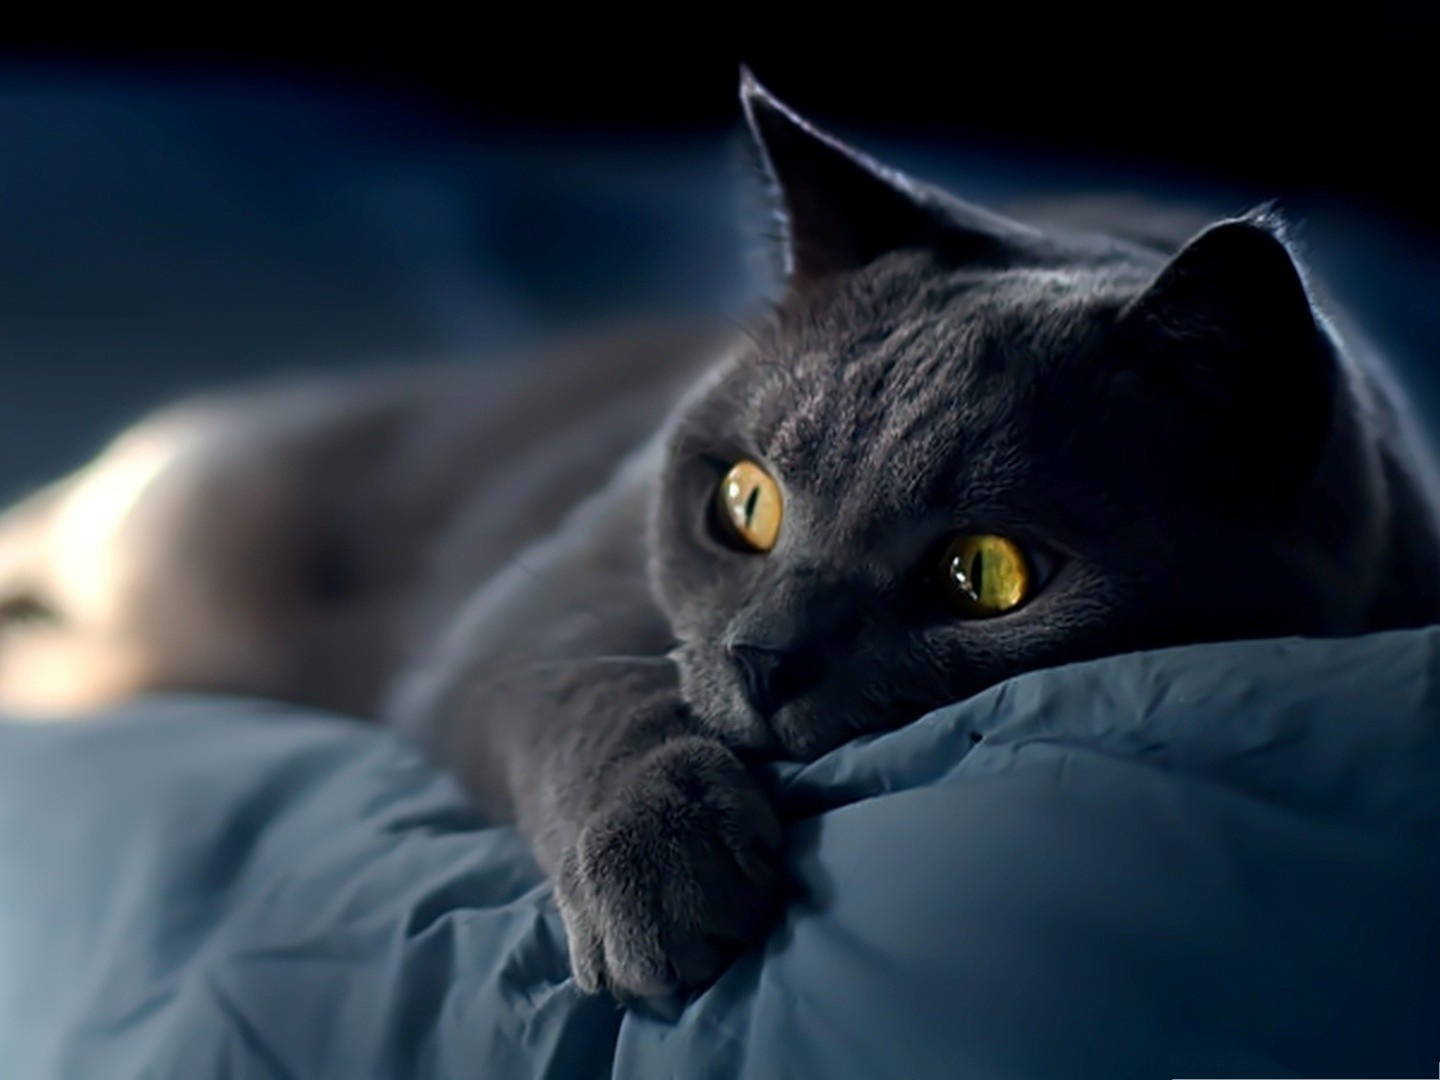 click to free download the wallpaper--Funny Cat Photos, Kitten in Its Dream, Lying on Blue Blanket 1440X1080 free wallpaper download